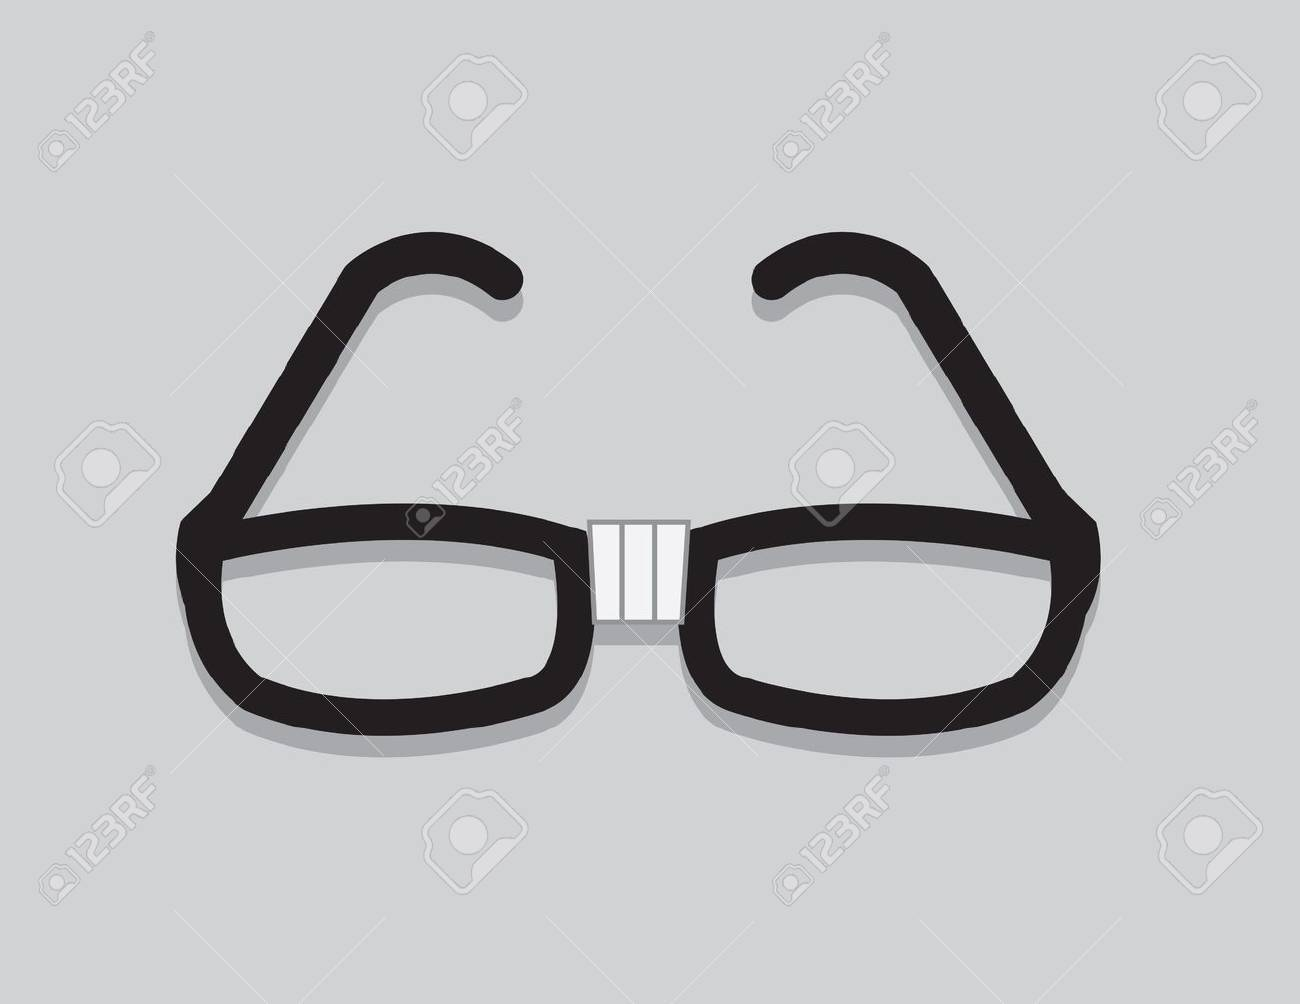 14146856f11 Nerdy glasses with taped center Stock Vector - 19895129